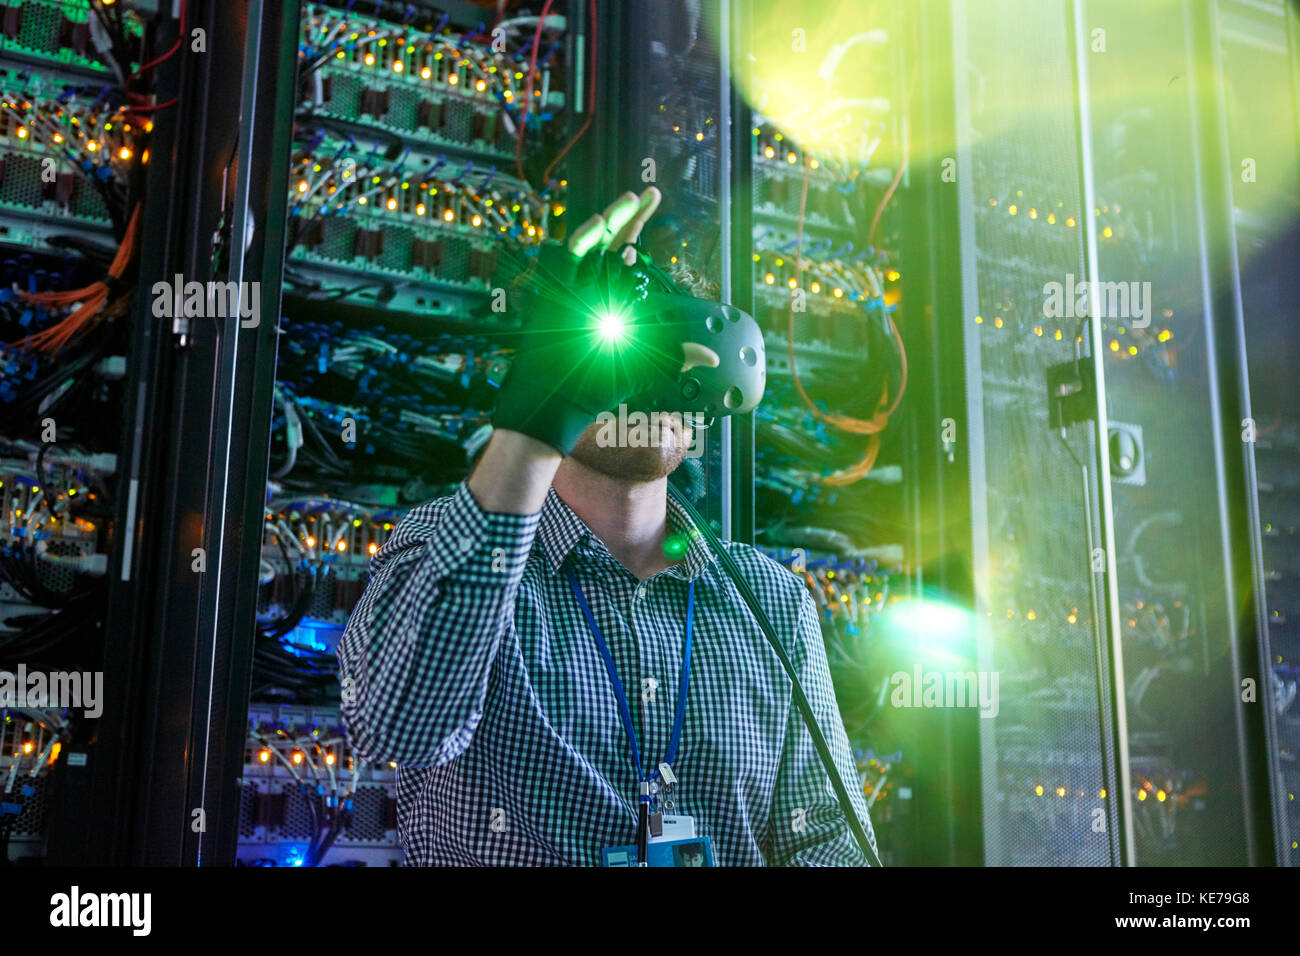 Male computer programmer using virtual reality simulator glasses and glowing glove in server room - Stock Image